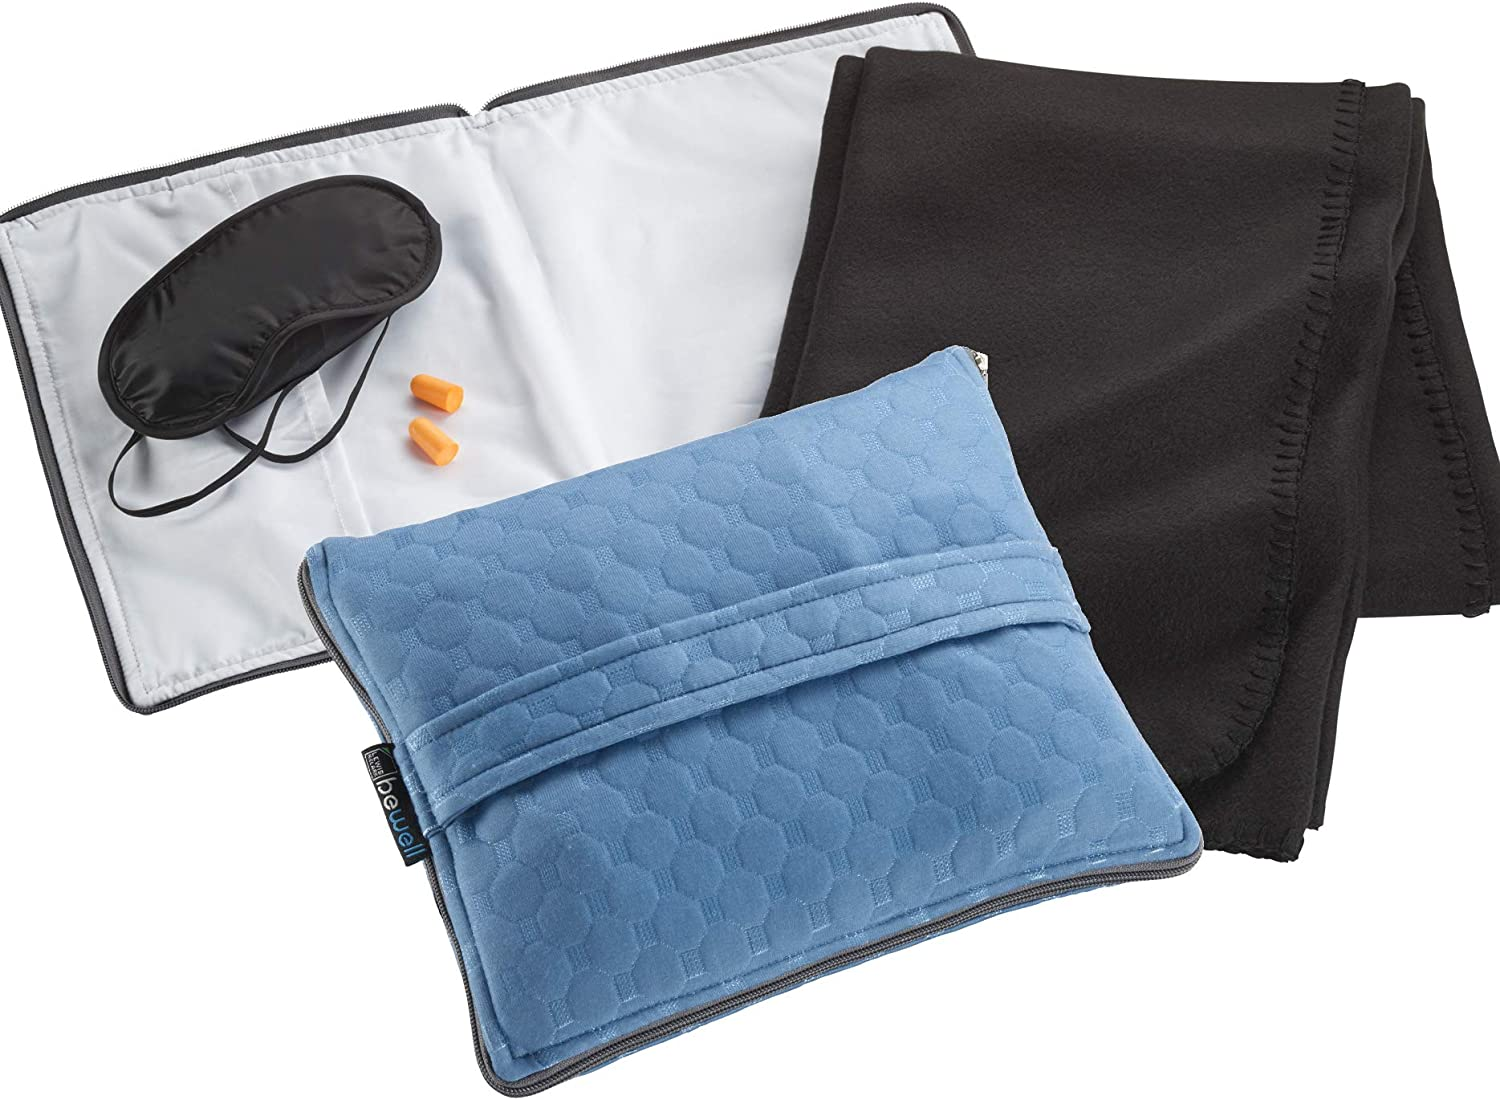 Lewis N. Clark Albuquerque Mall Ultimate Comfort Set Kit + Ai Travel Brand new Portable for